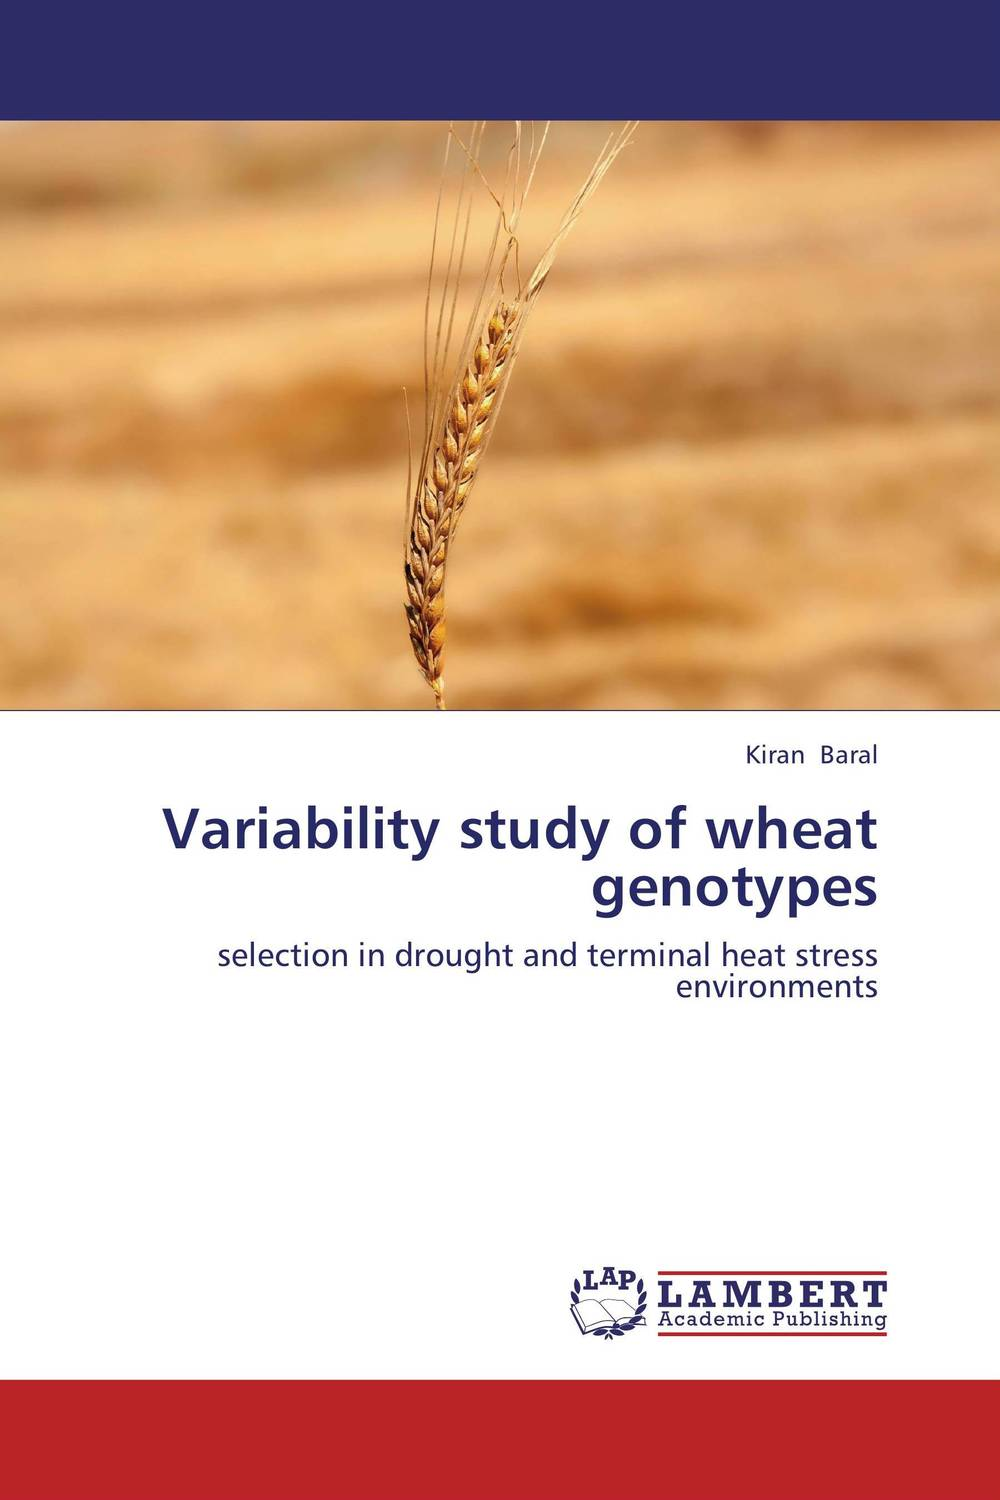 Variability study of wheat genotypes